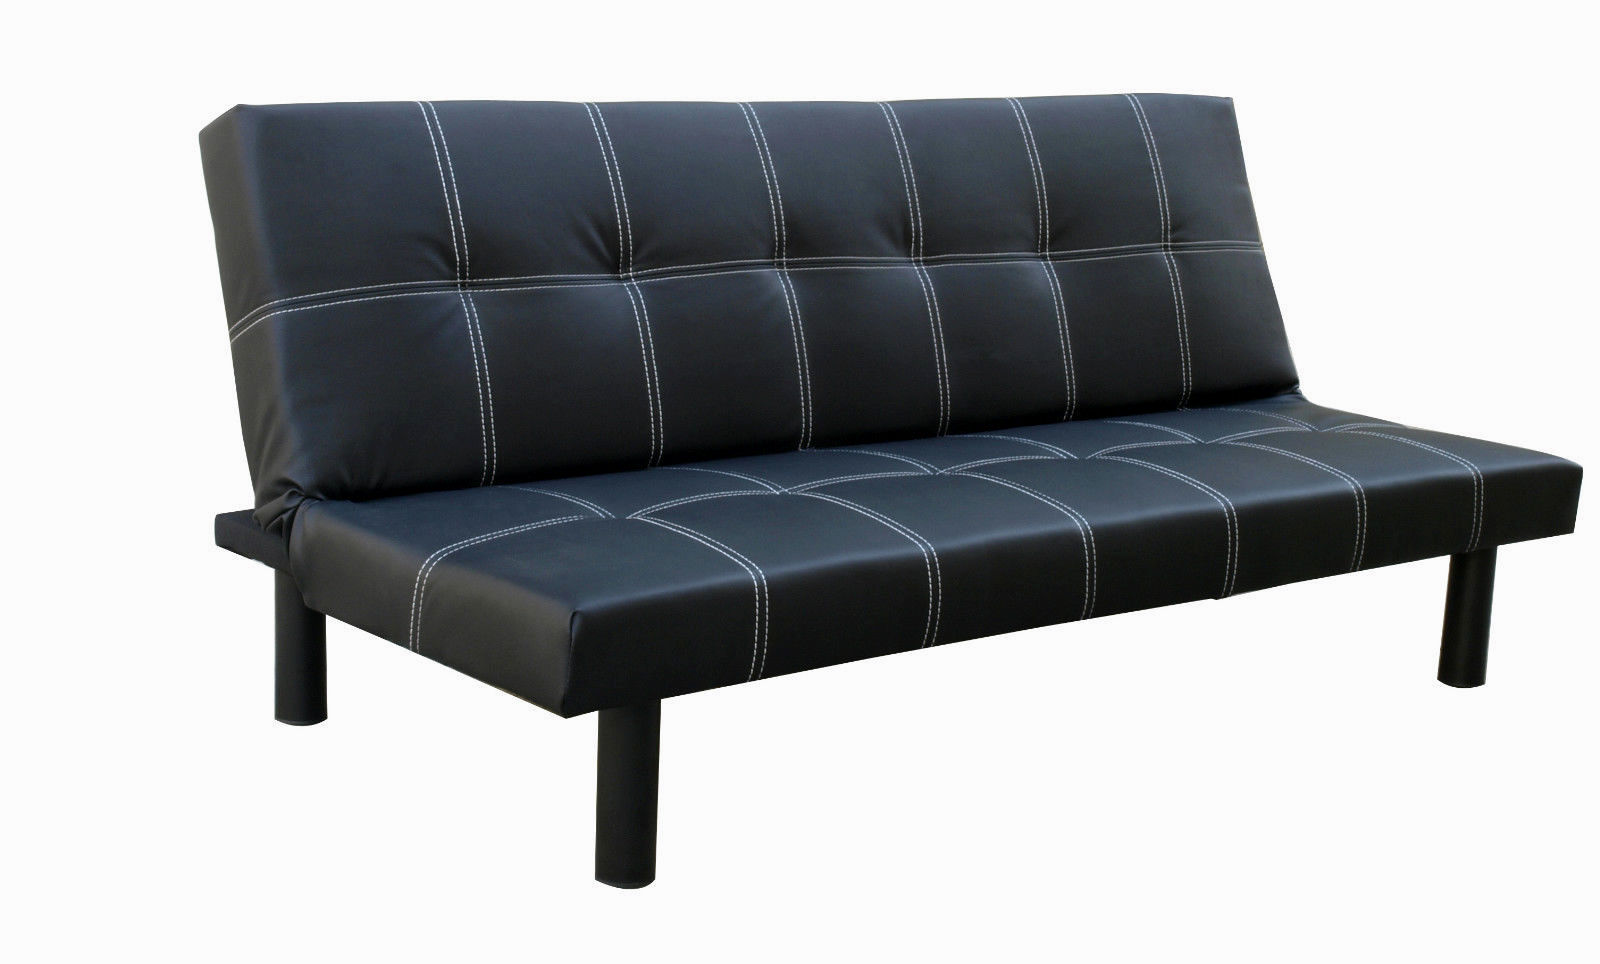 top black faux leather sofa gallery-Finest Black Faux Leather sofa Picture